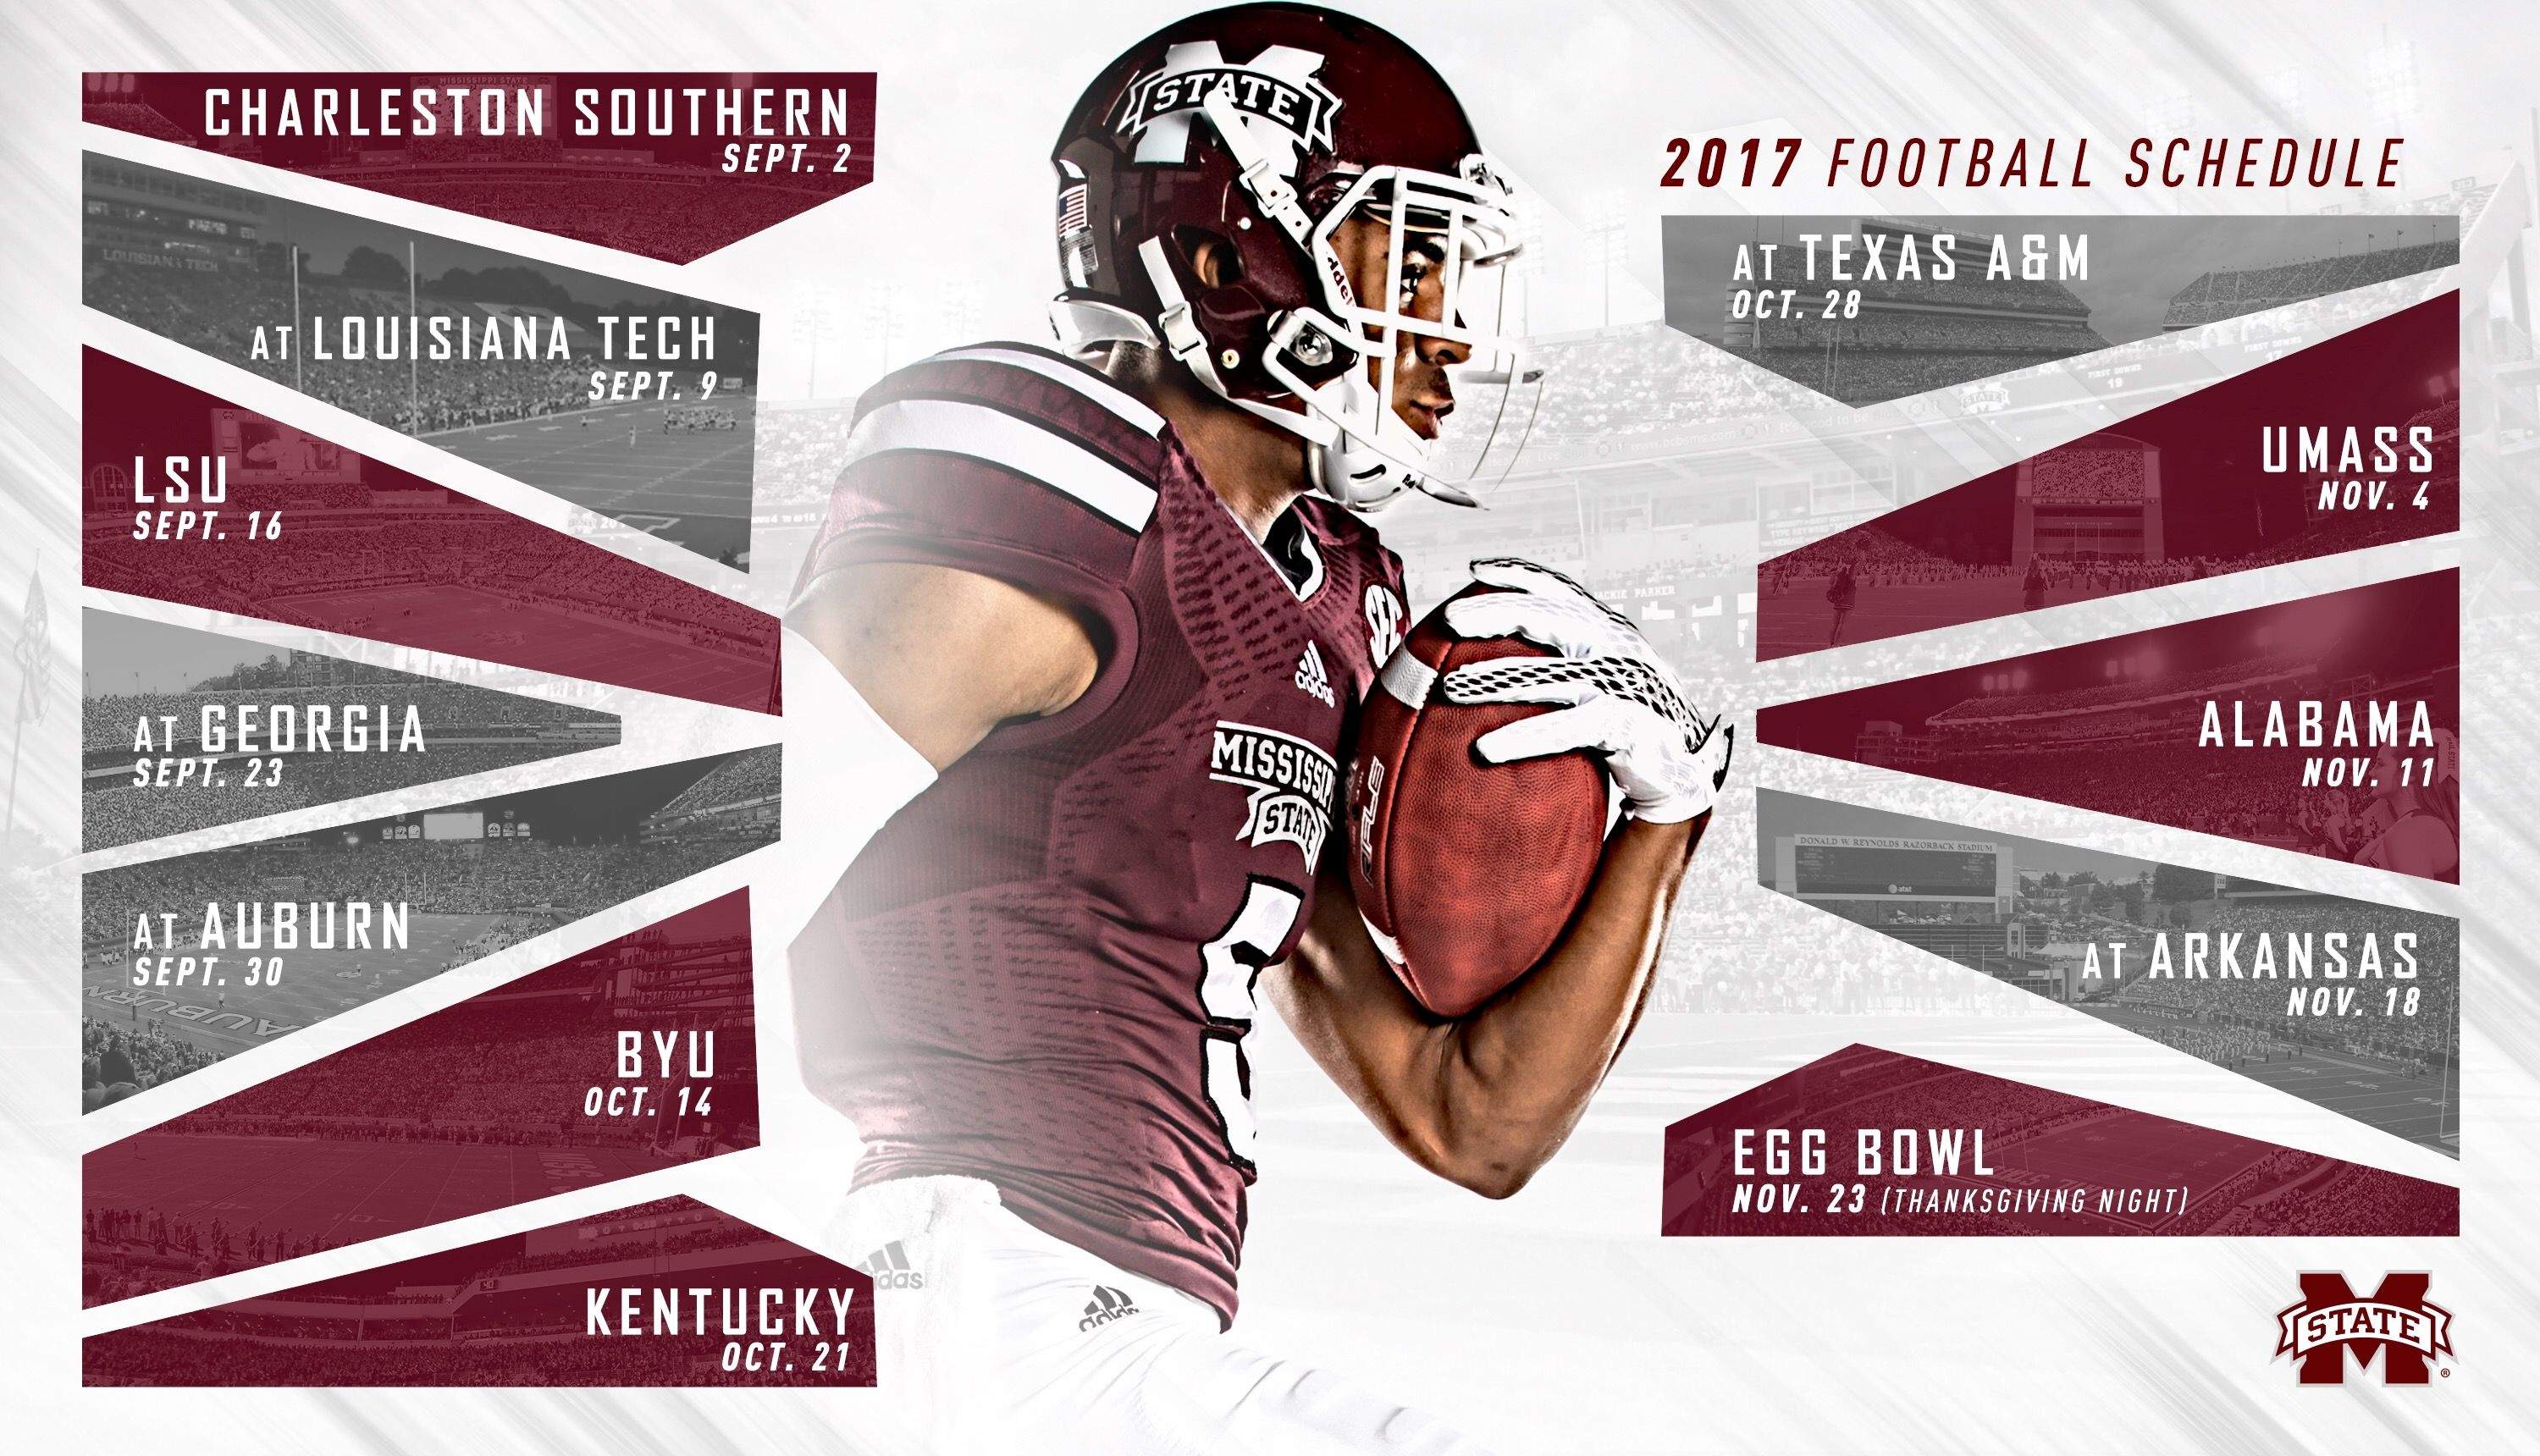 2017 Mississippi State Football Schedule Msu football